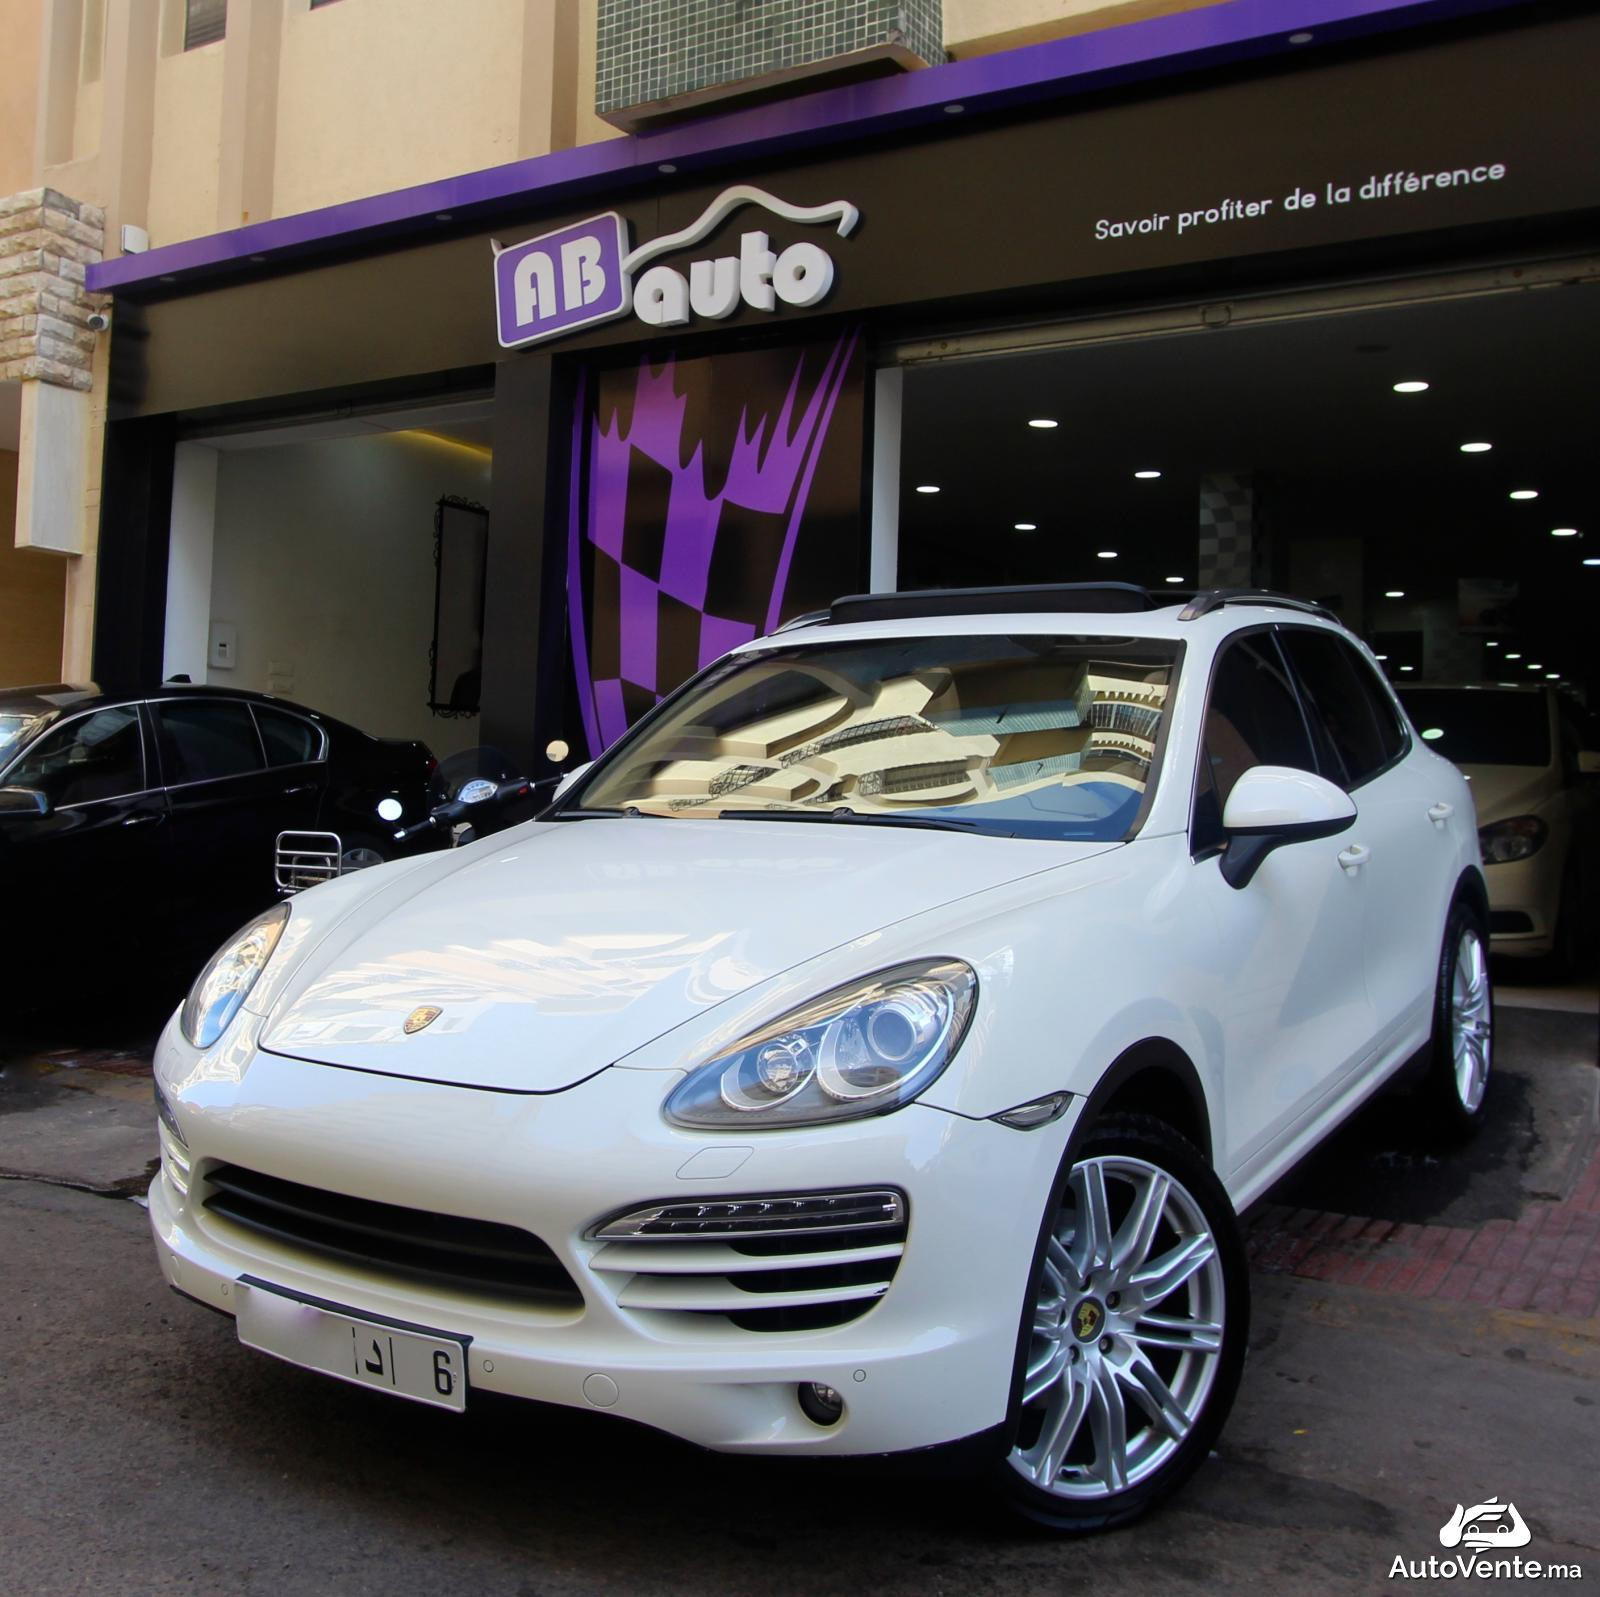 acheter porsche cayenne d 39 occasion a casablanca maroc autovente. Black Bedroom Furniture Sets. Home Design Ideas